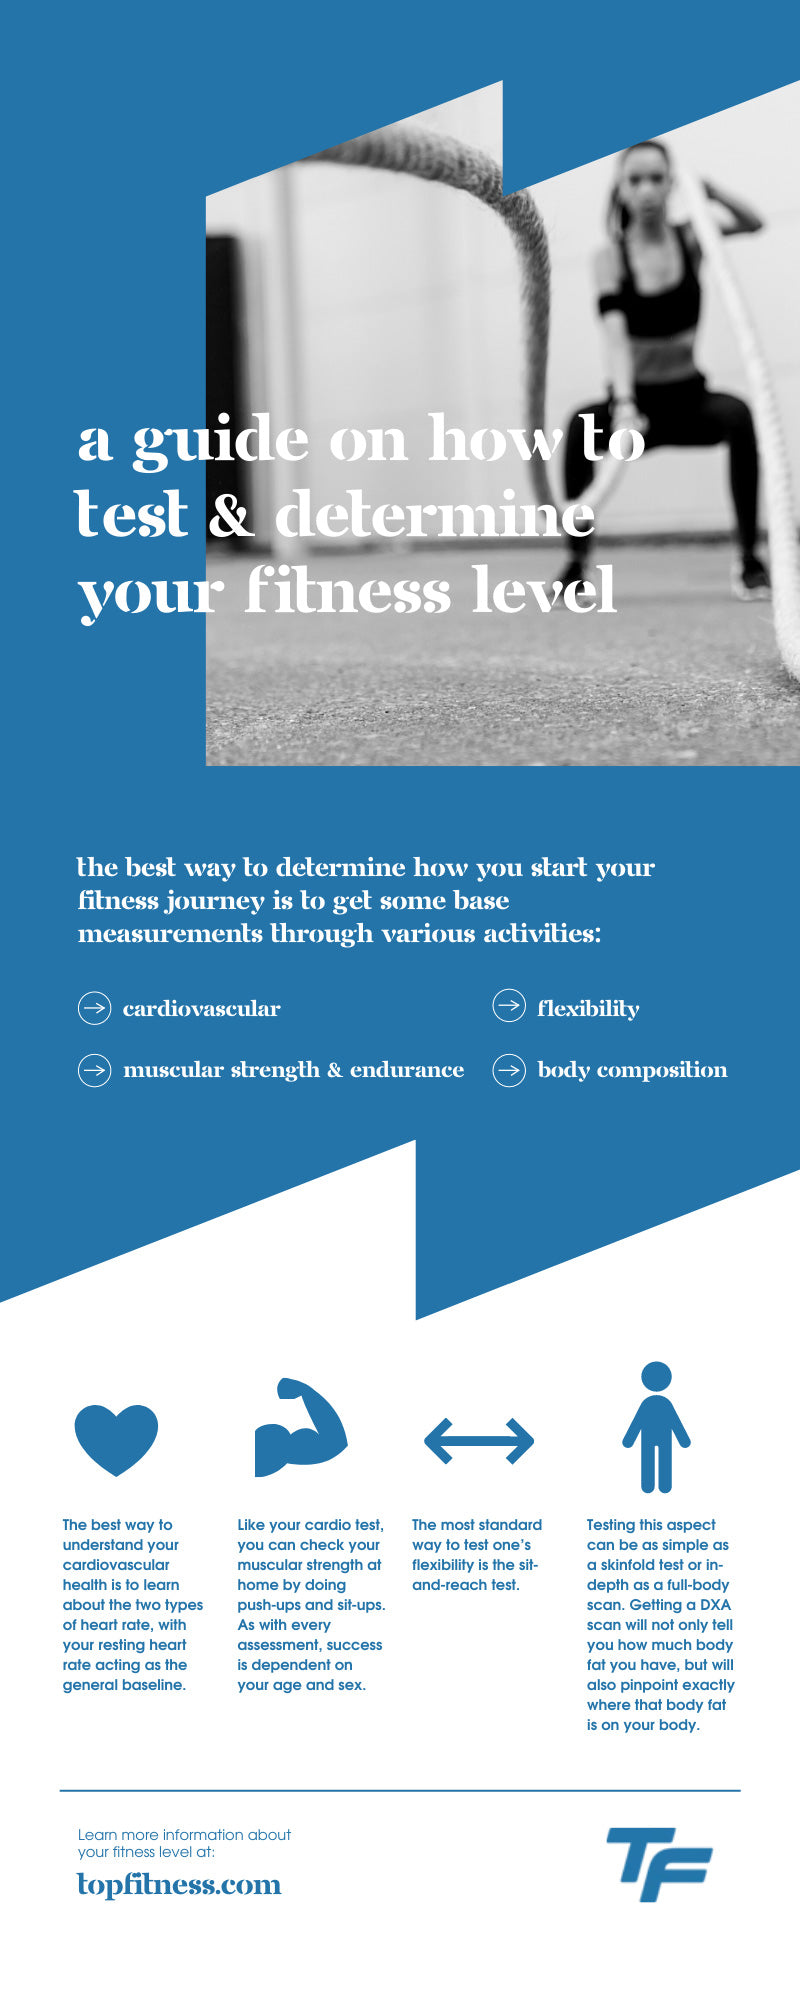 A Guide on How To Test & Determine Your Fitness Level